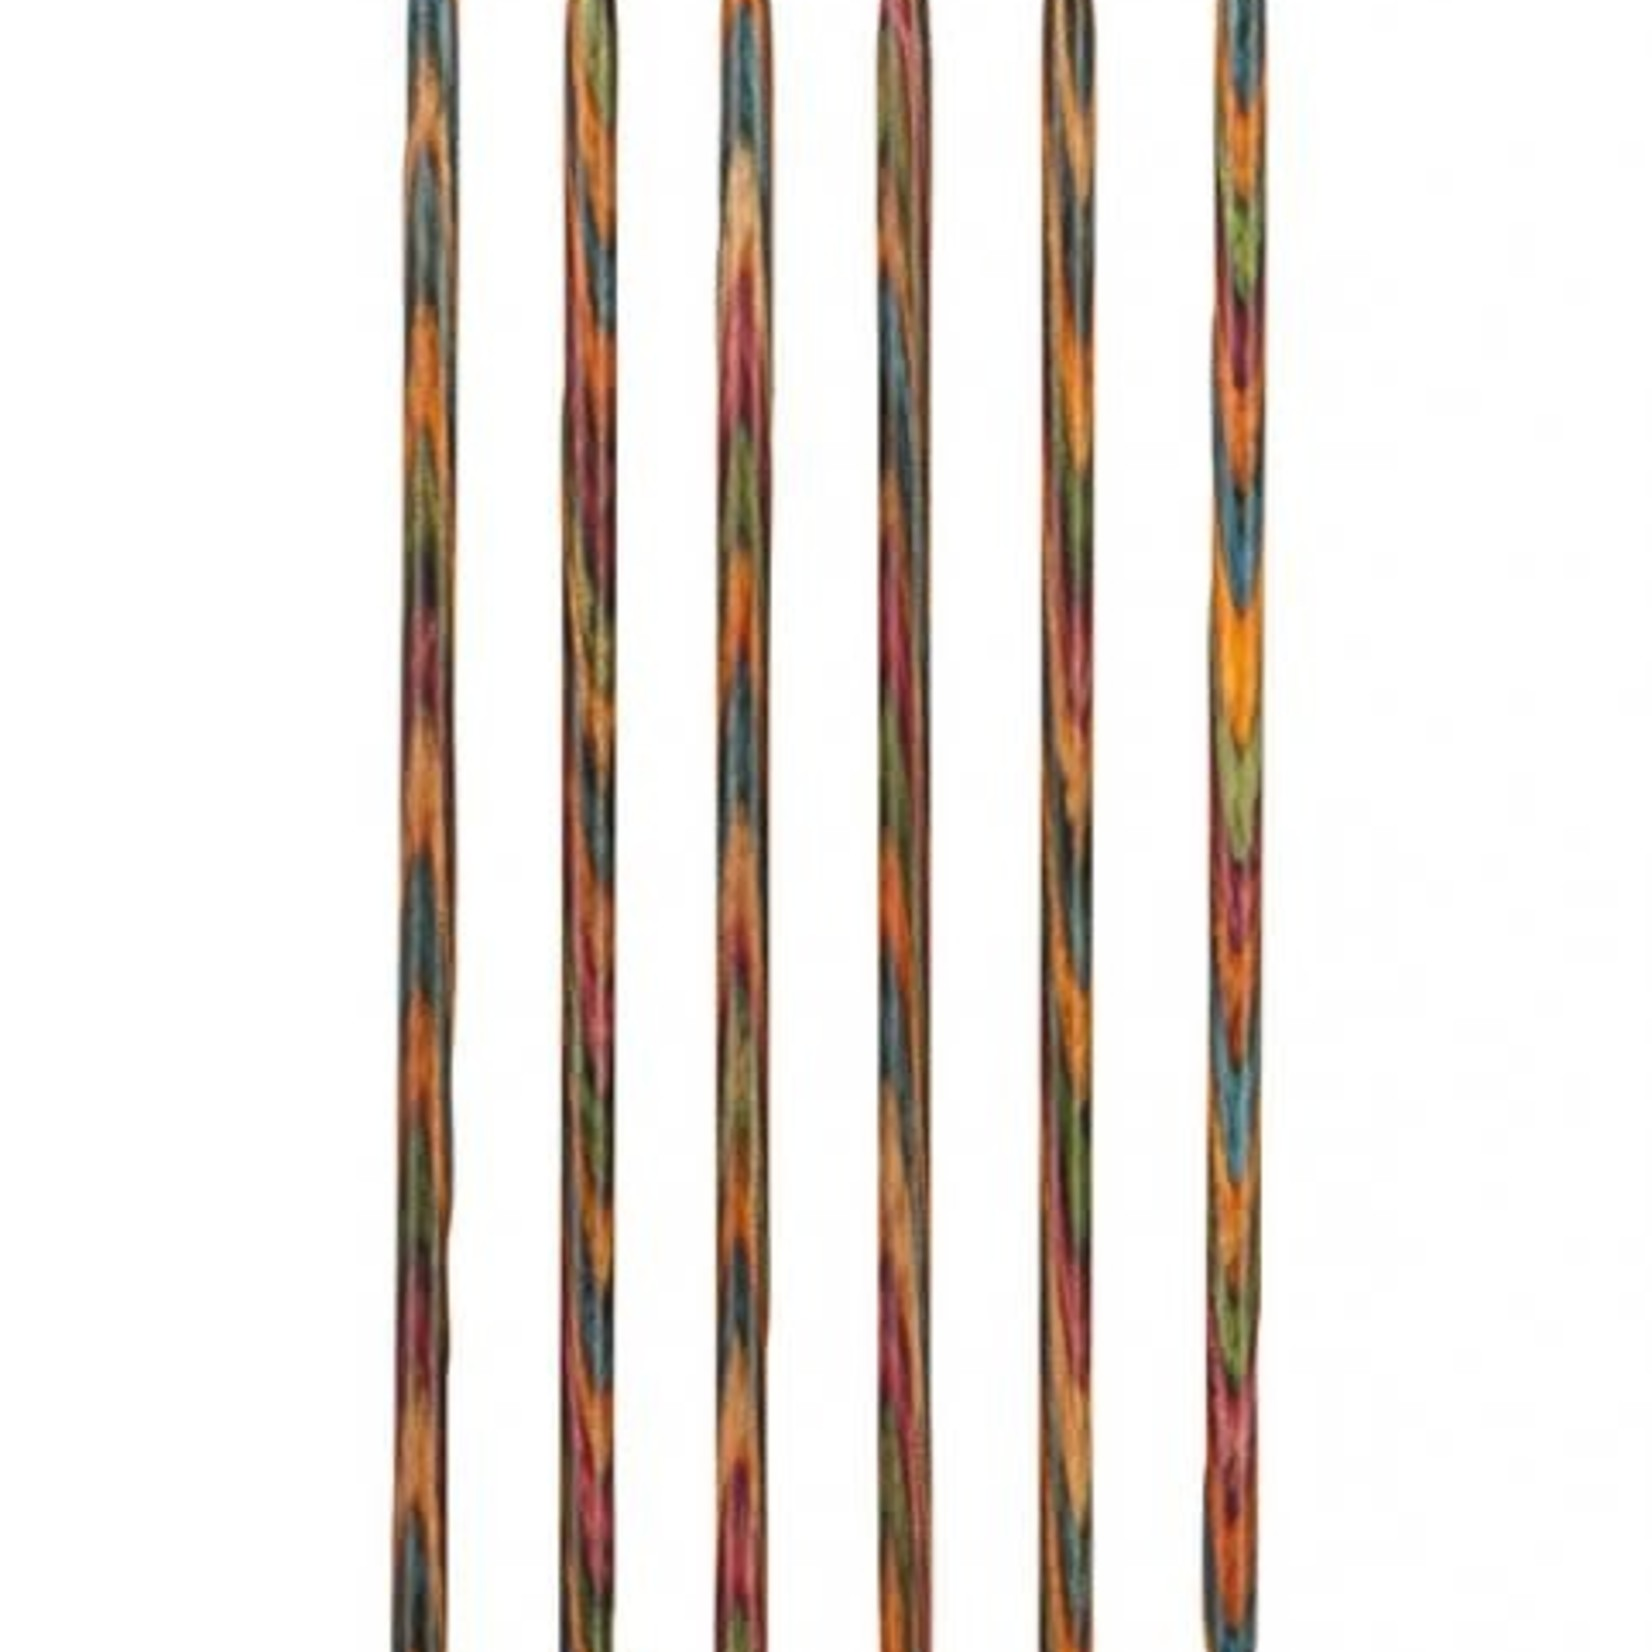 "Knit Picks KNIT PICKS Rainbow Wood Double Point Knitting Needles 20cm (8"")"